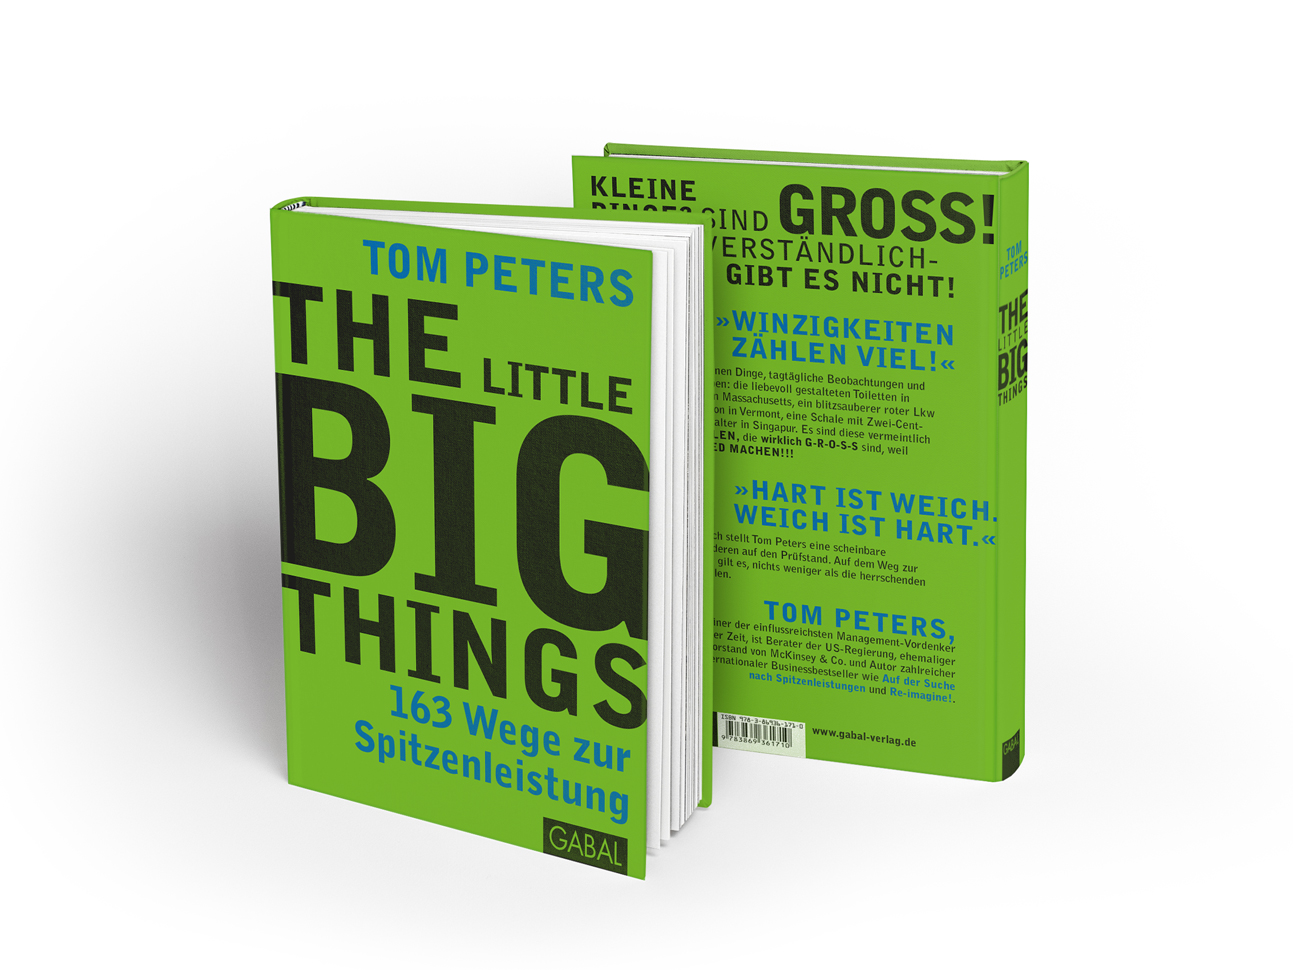 martin_zech_design_buchcovergestaltung_gabal_verlag_tom_peters_little_big_things